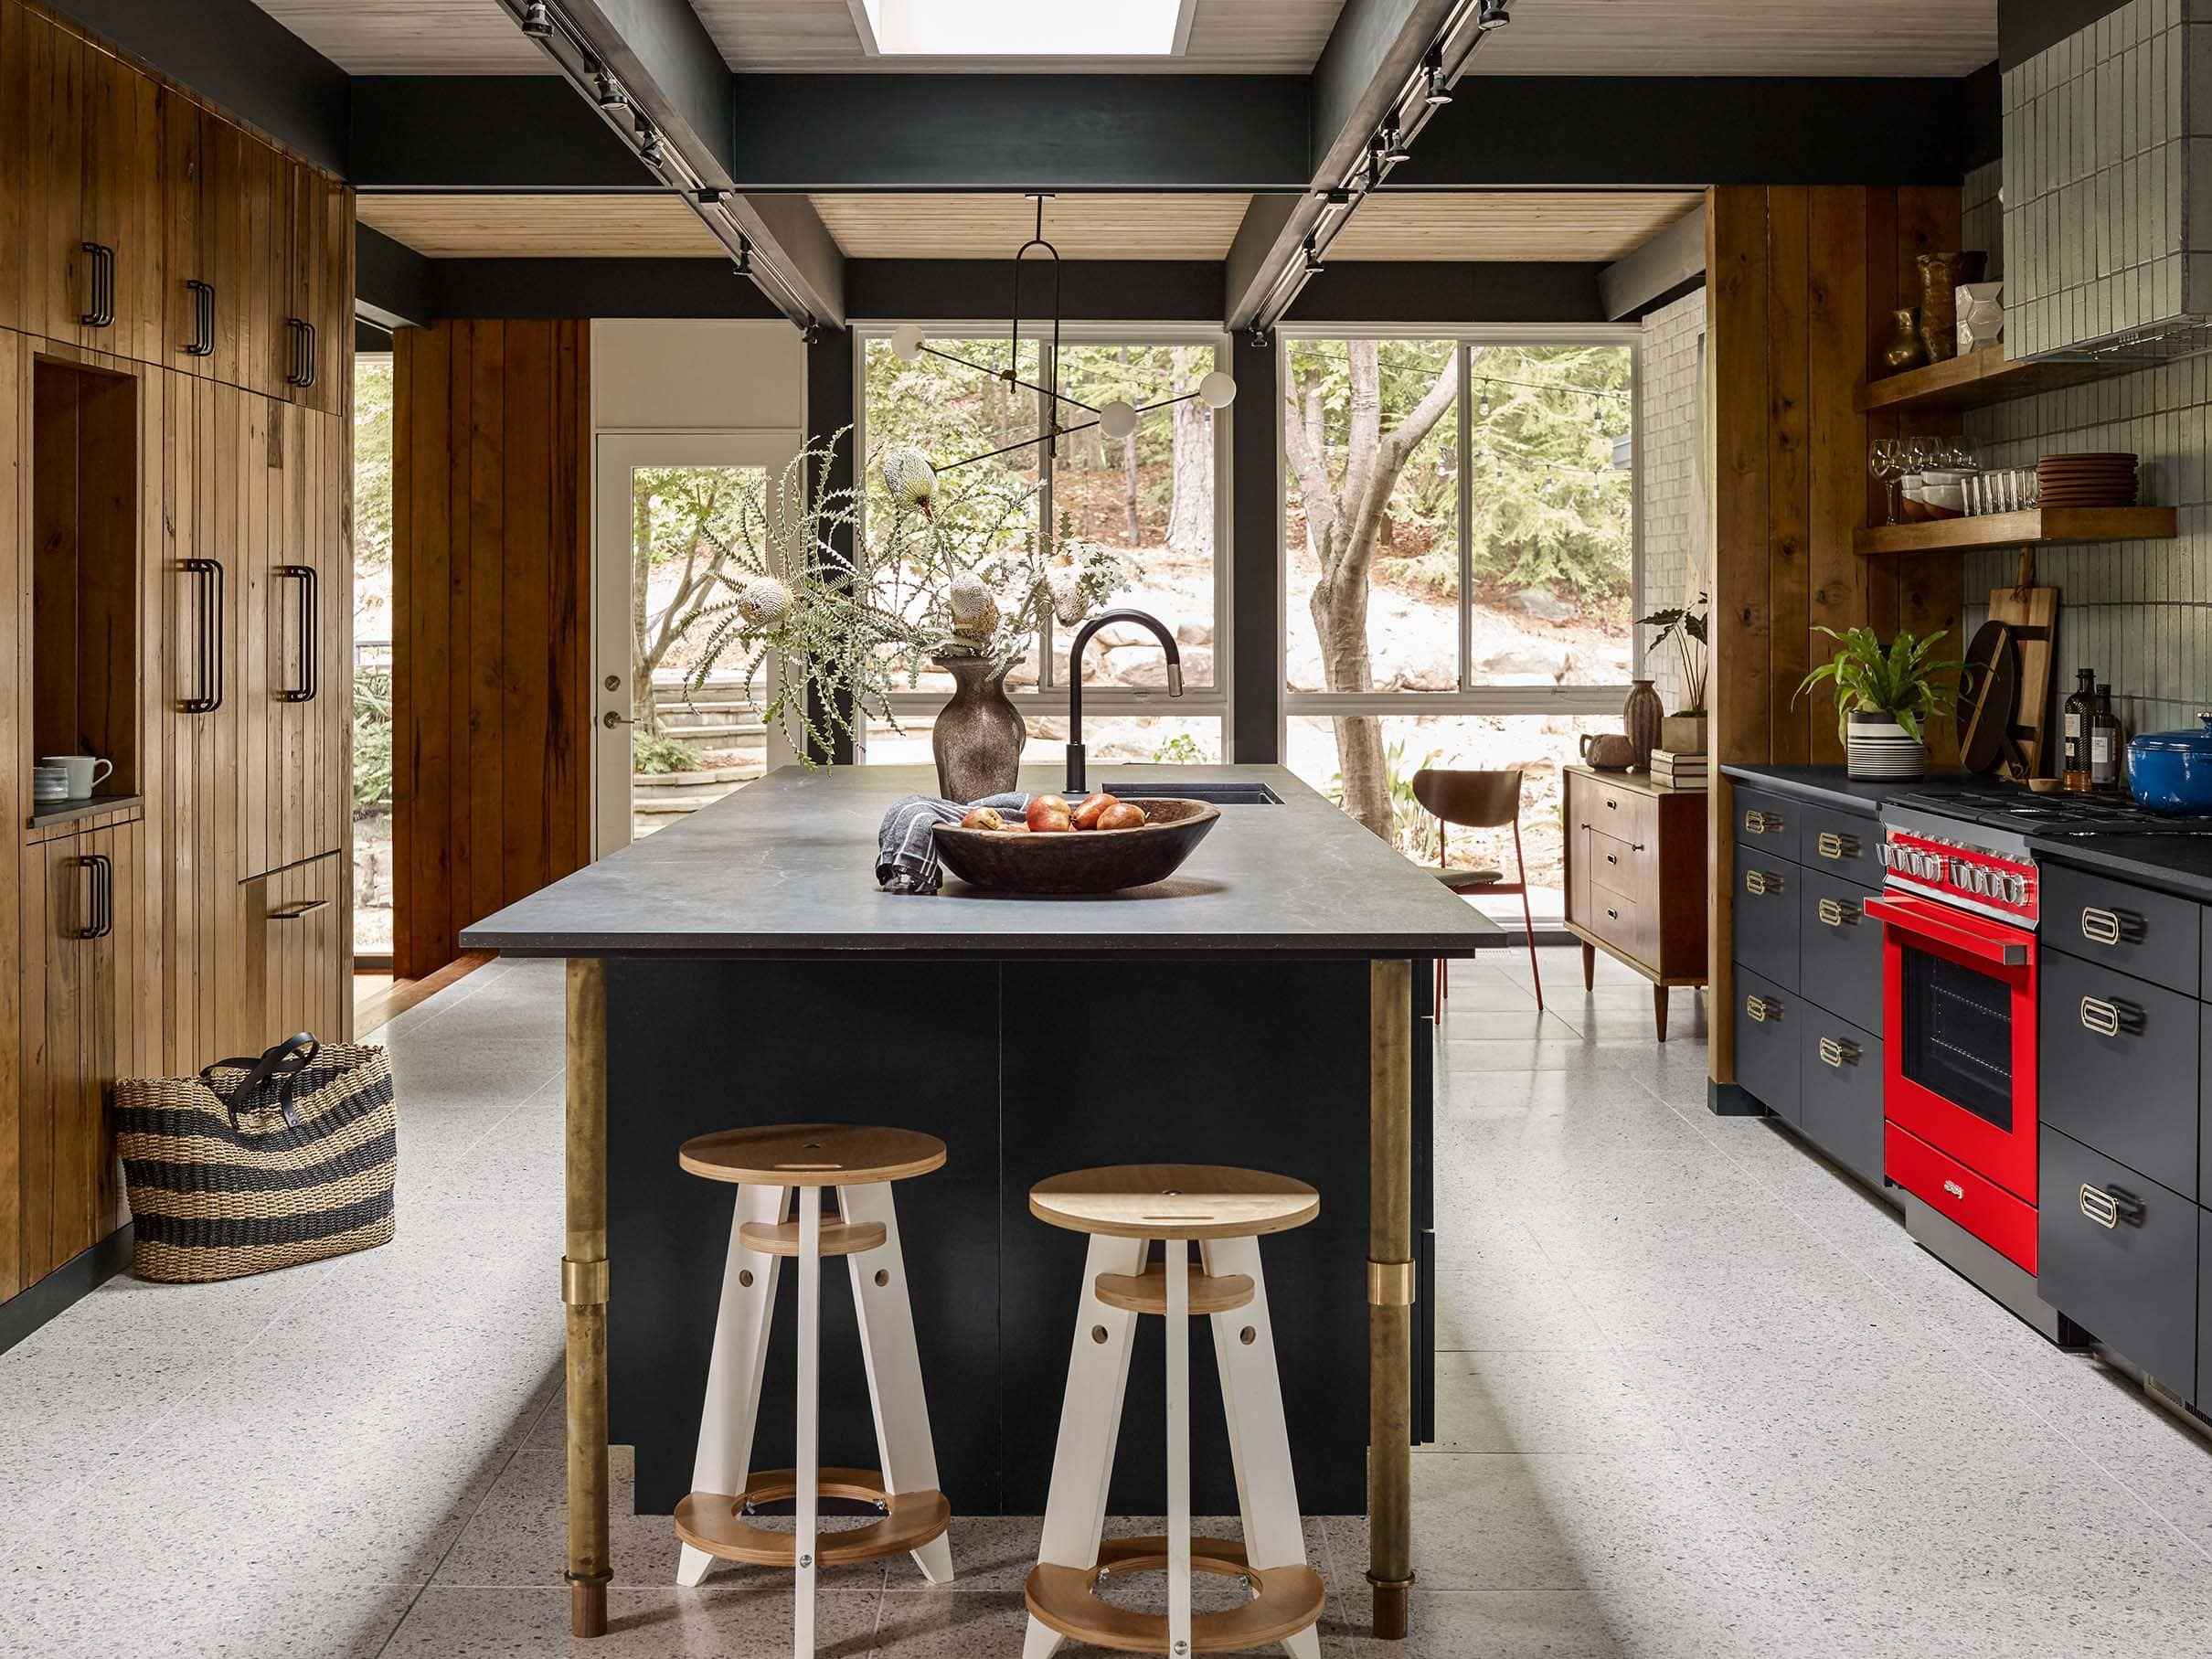 Modern kitchen with skylight over island red oven natural wood cabinets